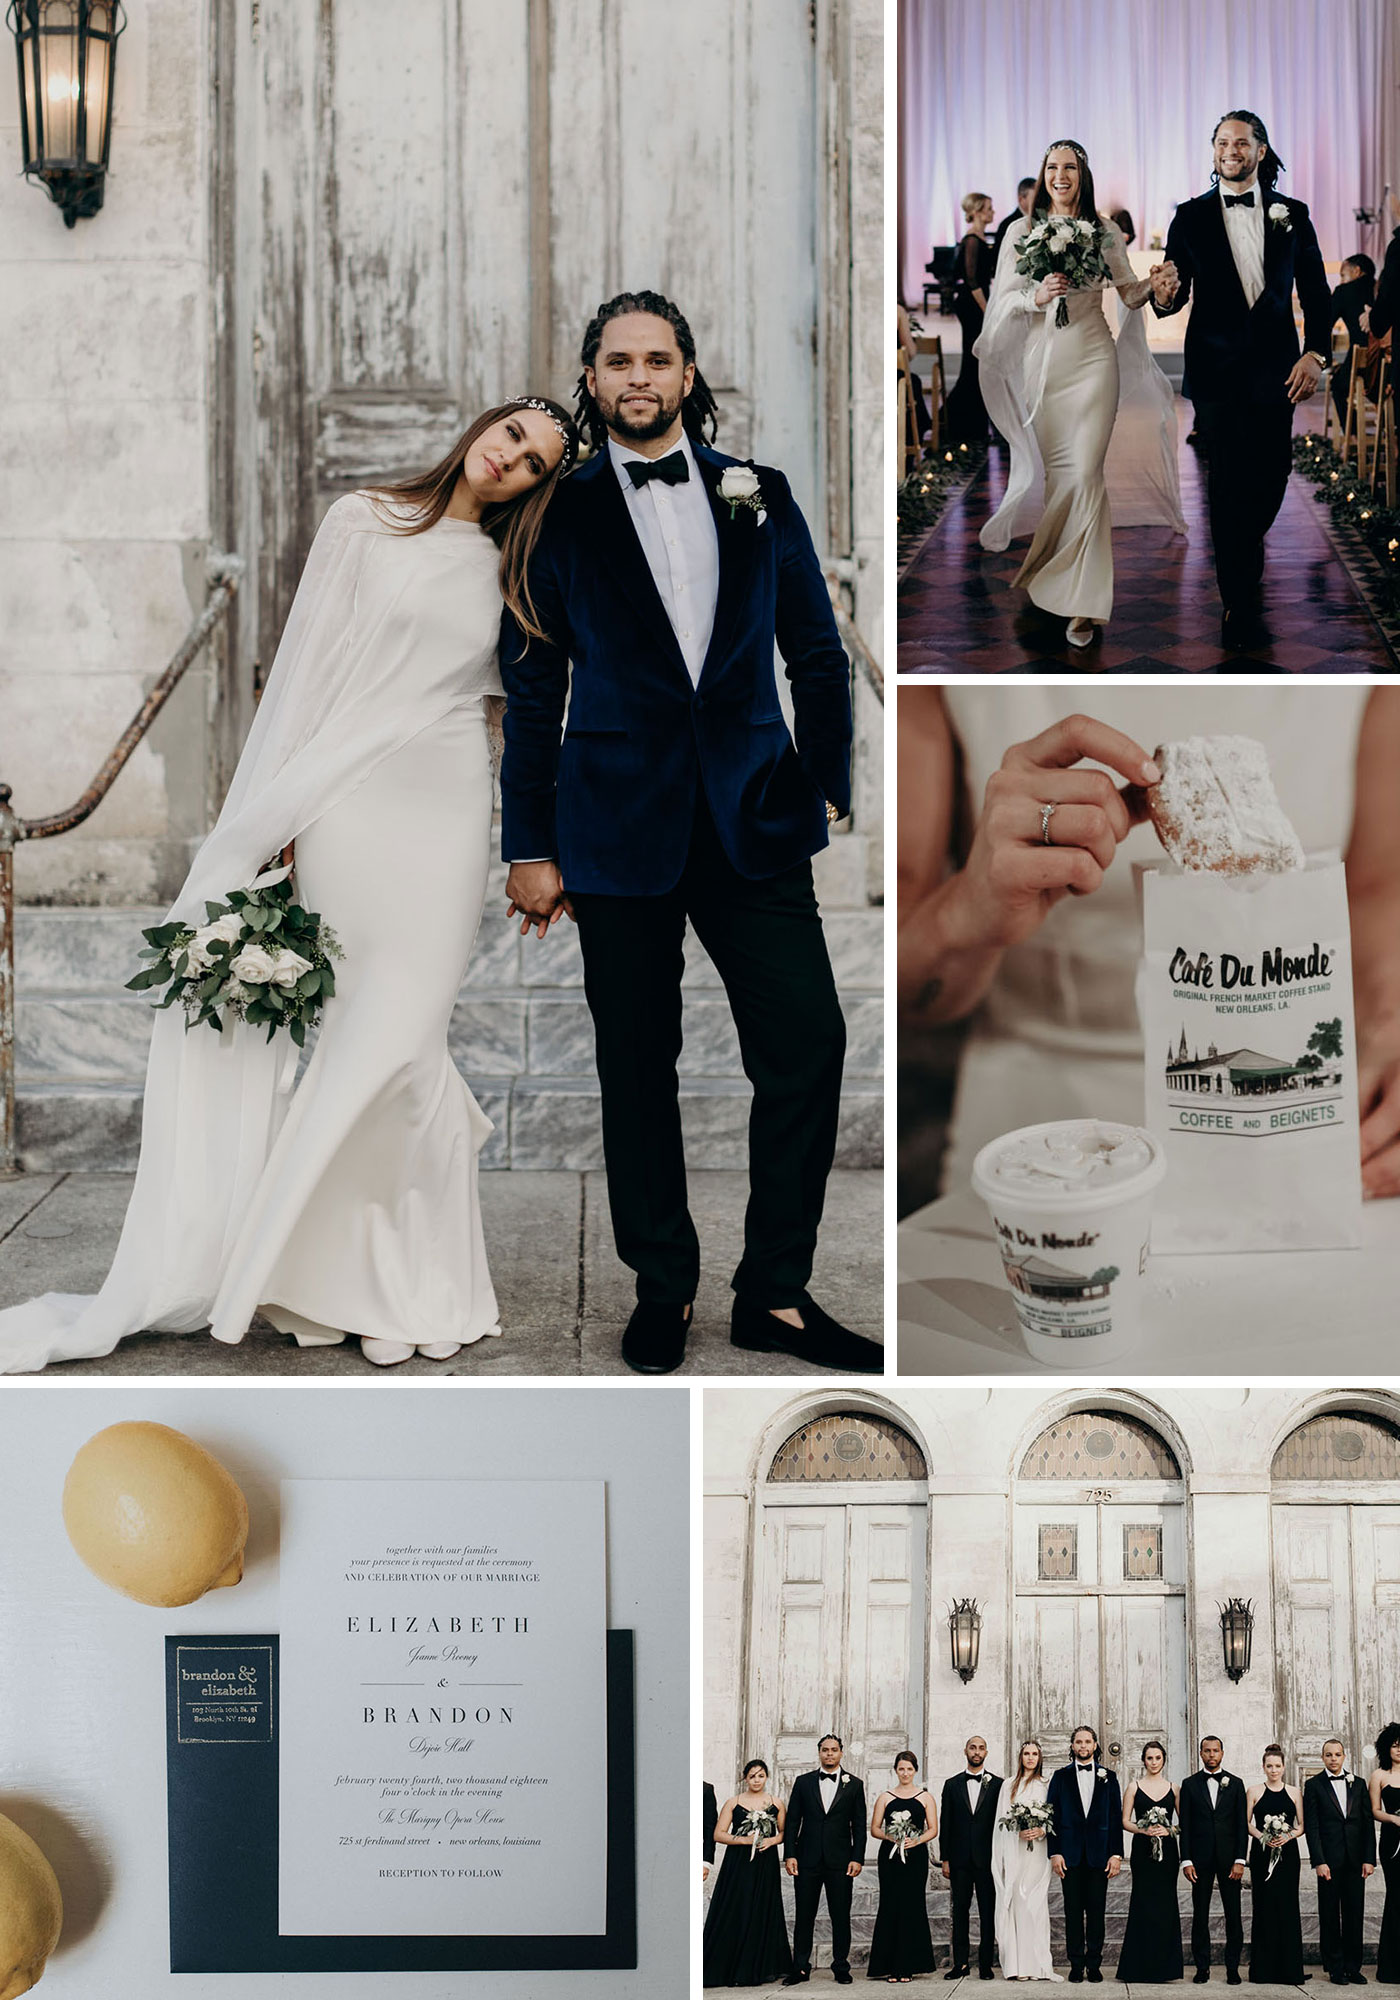 Handmade New Orleans Wedding in a 19th Century Converted Church